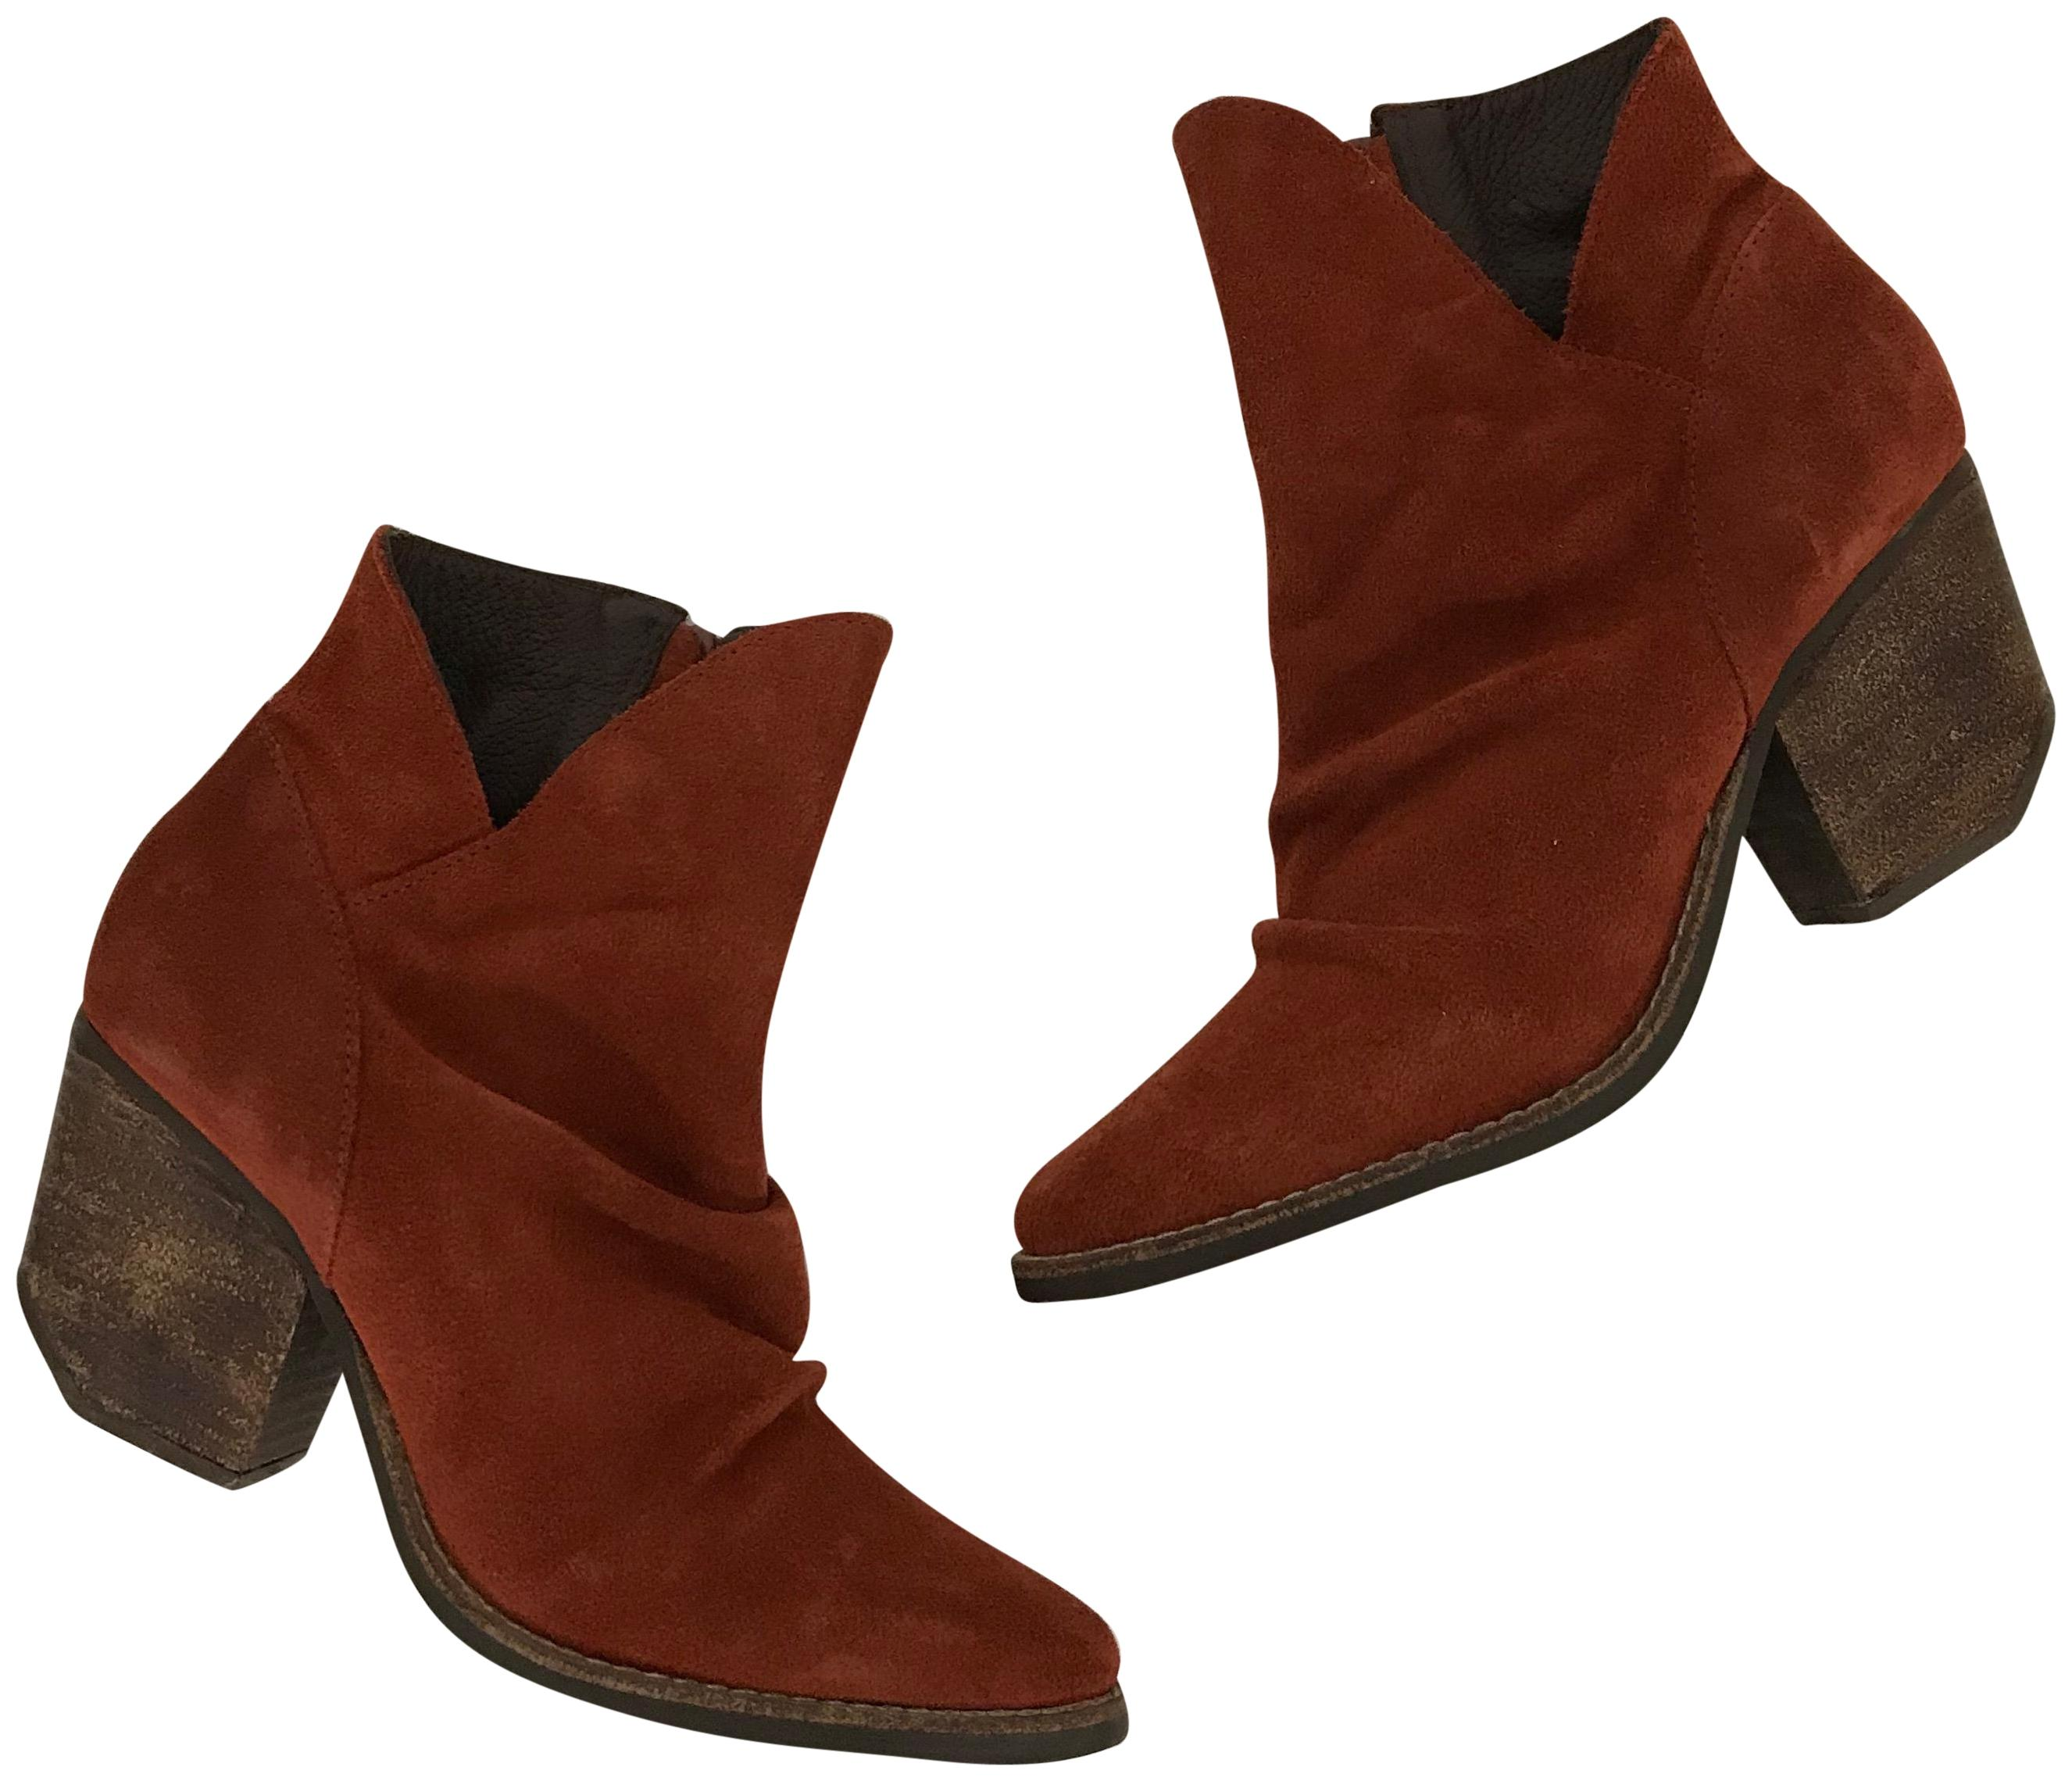 Amuse Boots/Booties Society Red X Matisse Boots/Booties Amuse Size US 7 Regular (M, B) cf355d